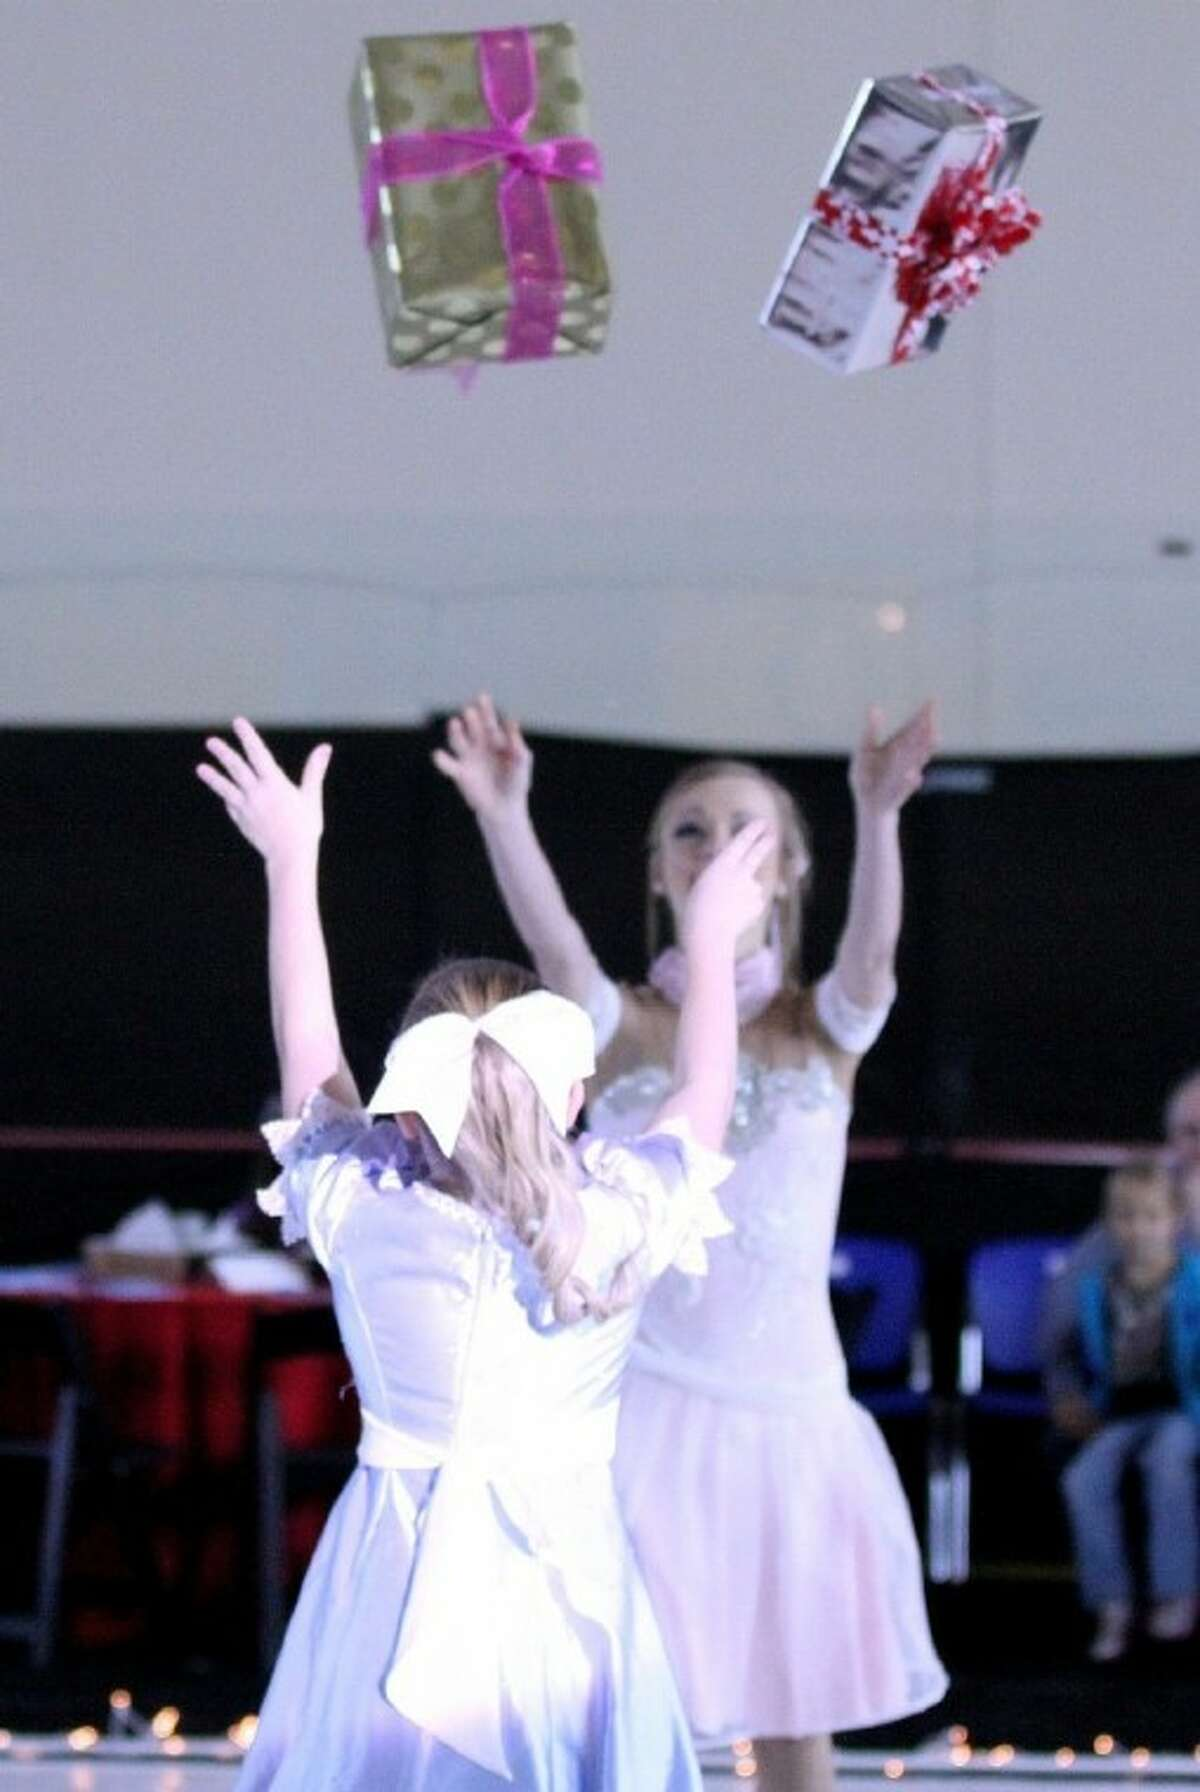 Tossing gifts in the air during the Nutcracker on Ice.